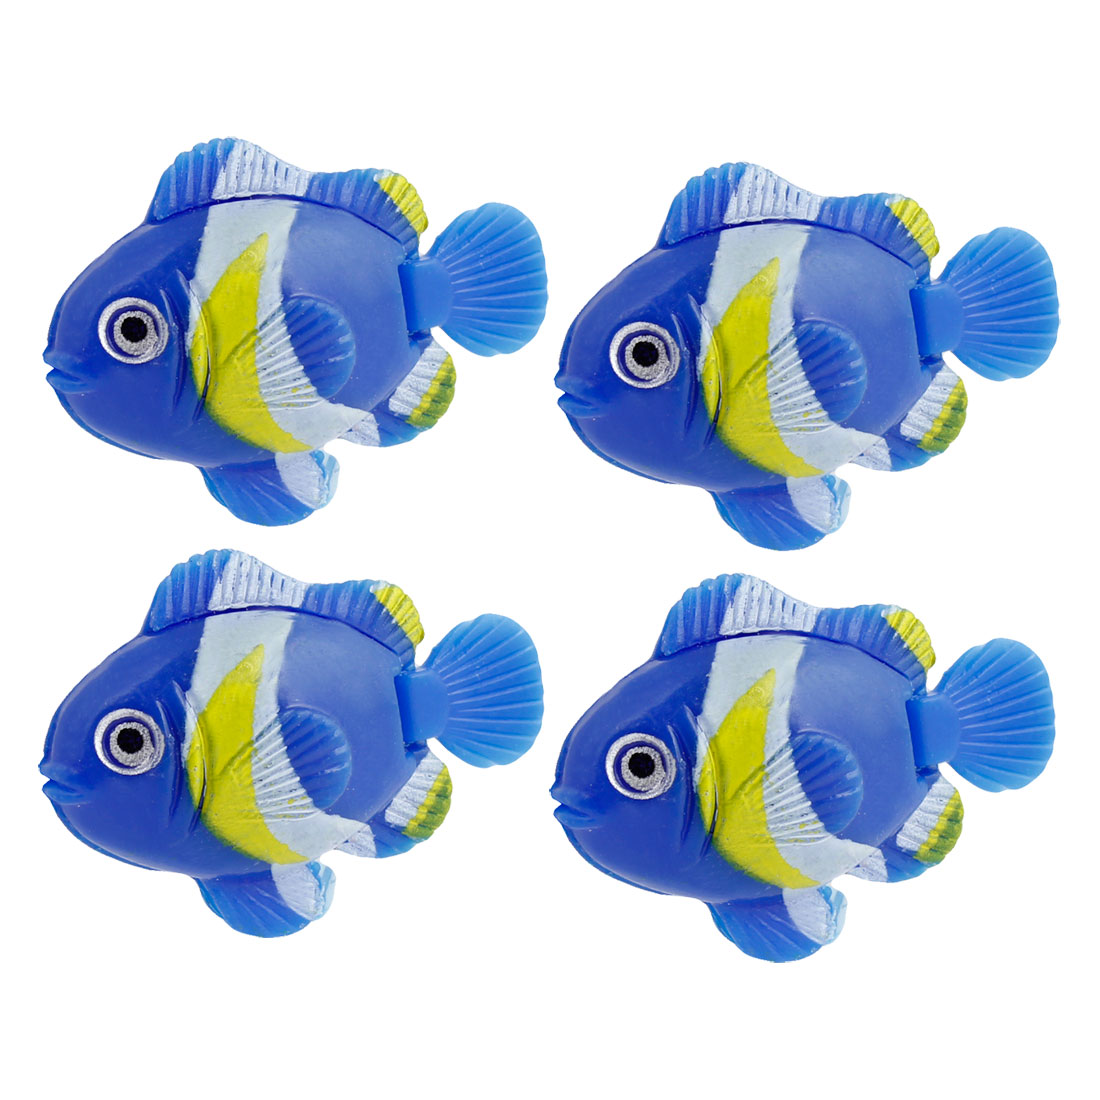 4 Pcs Colorful Plastic Swing Tail Fish Aquarium Tank Ornament Decor